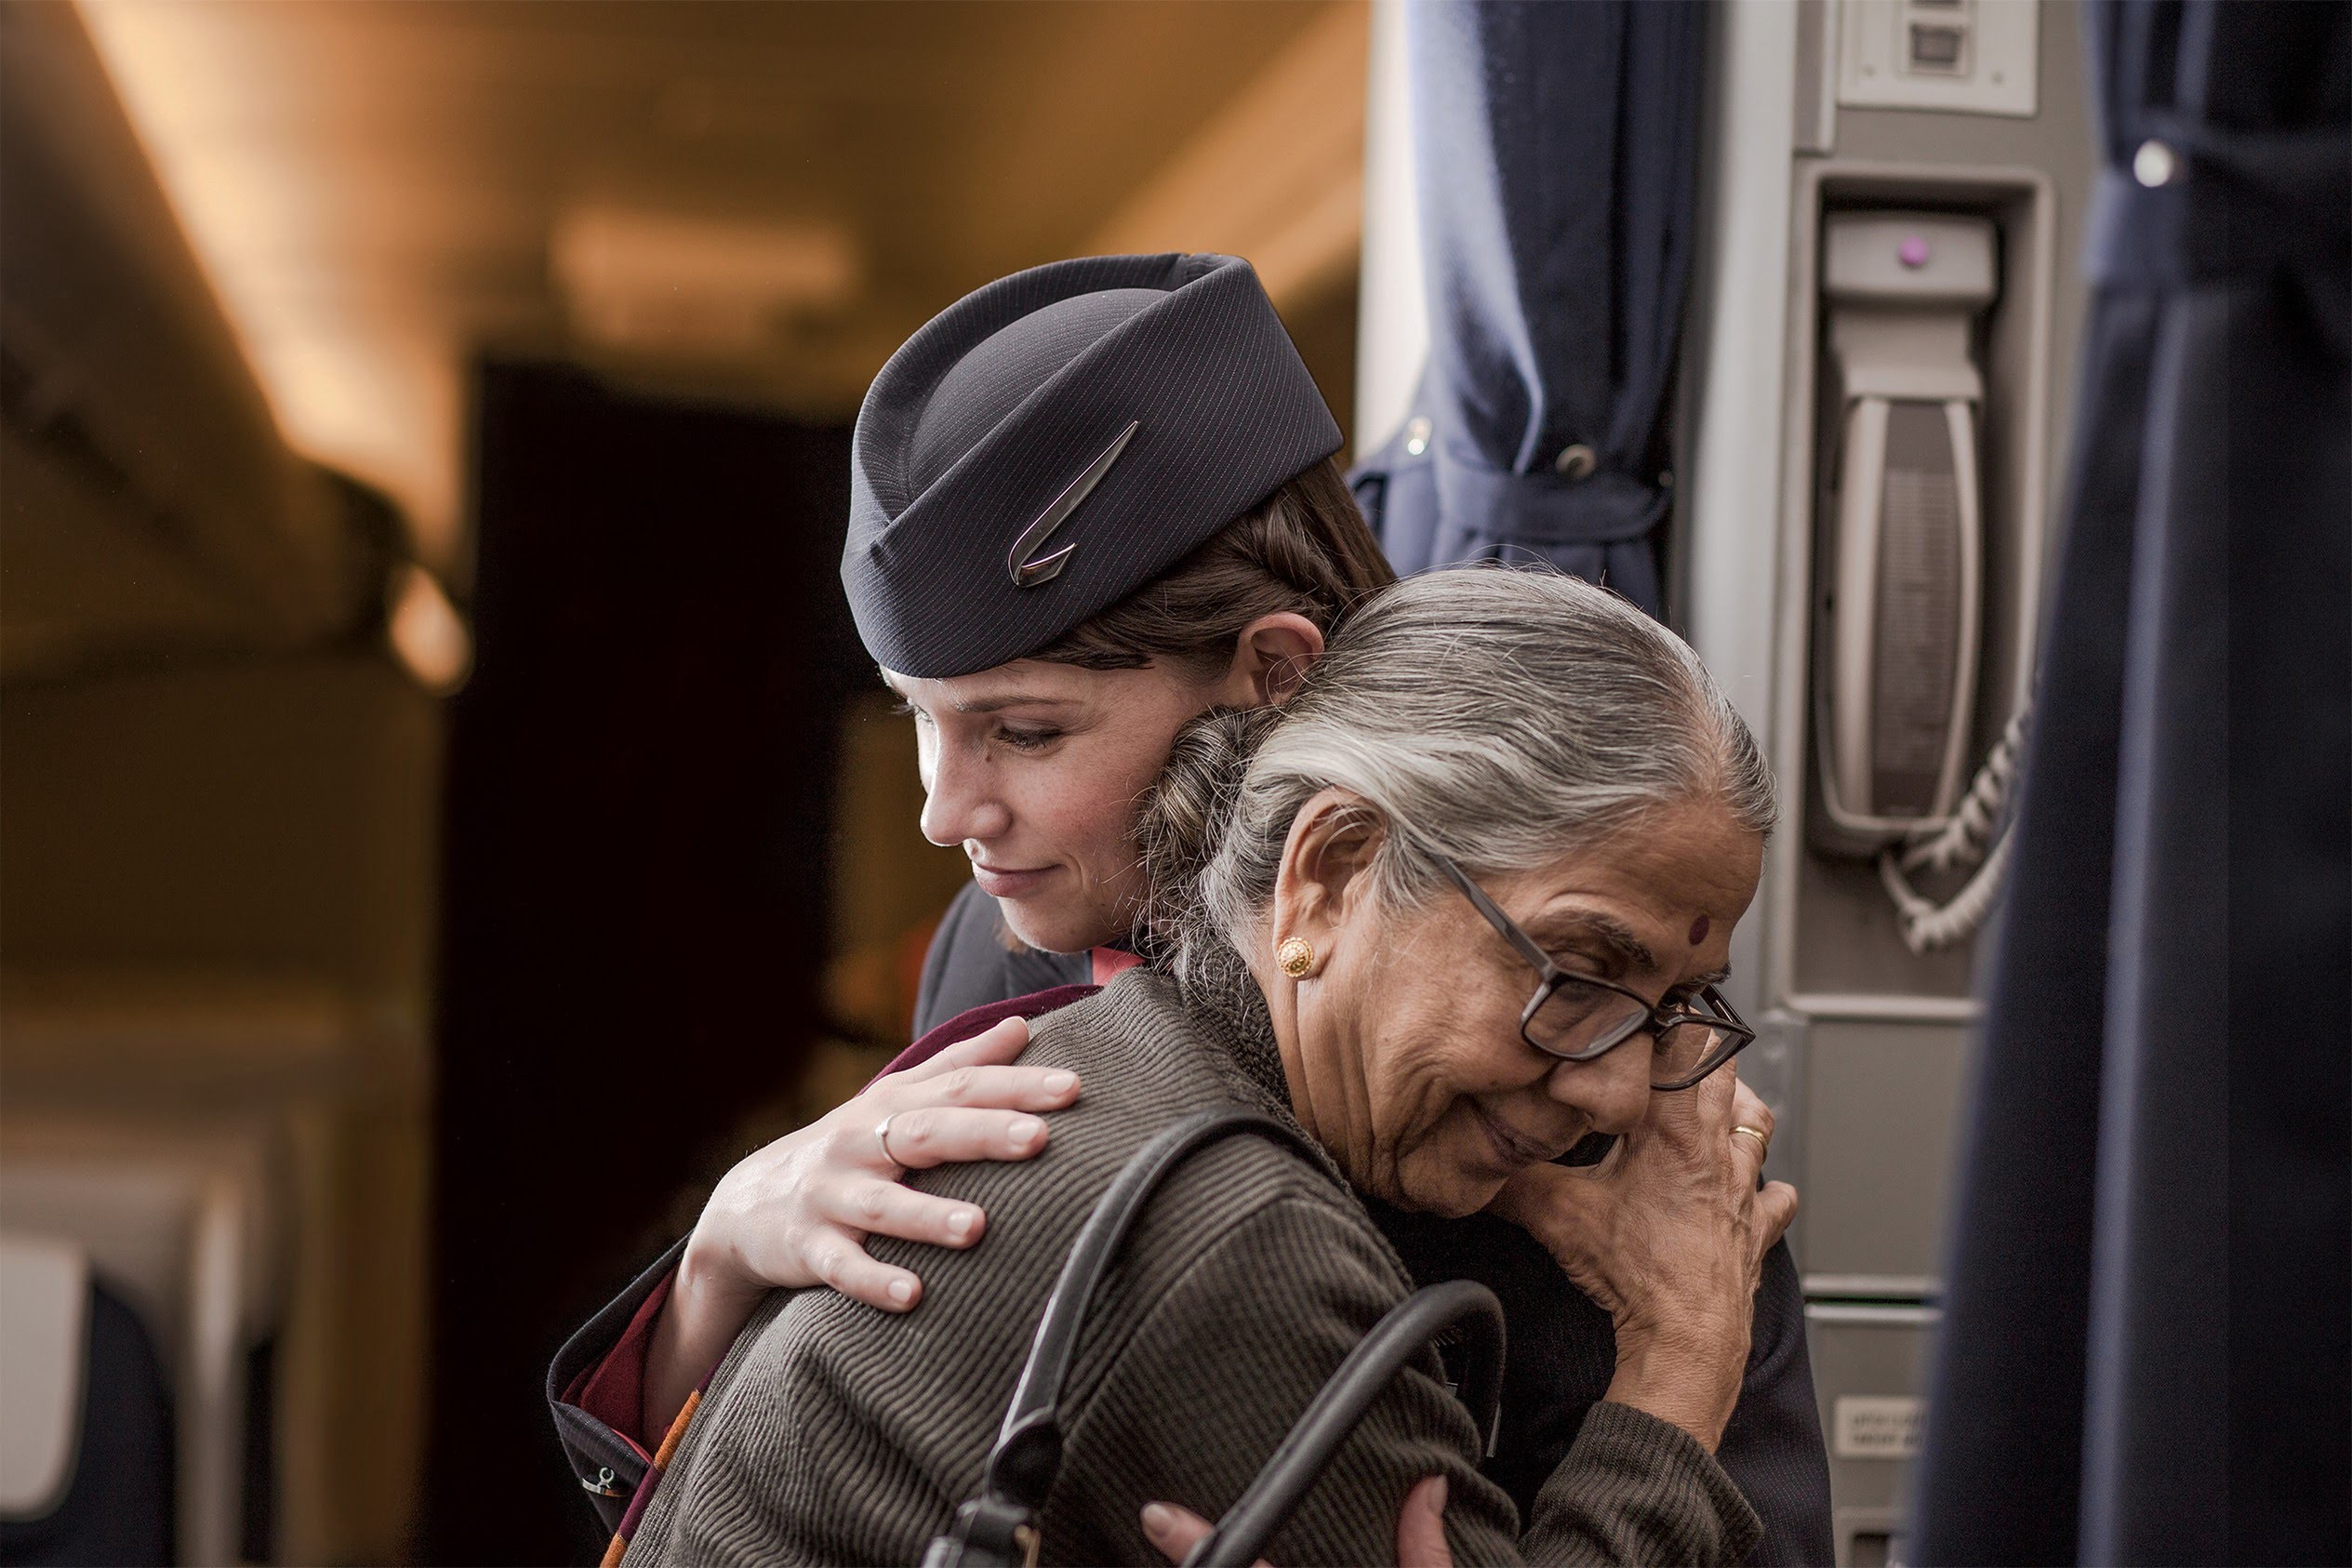 British Airways — Fuelled by love❤campaign - AD DISCOVERY